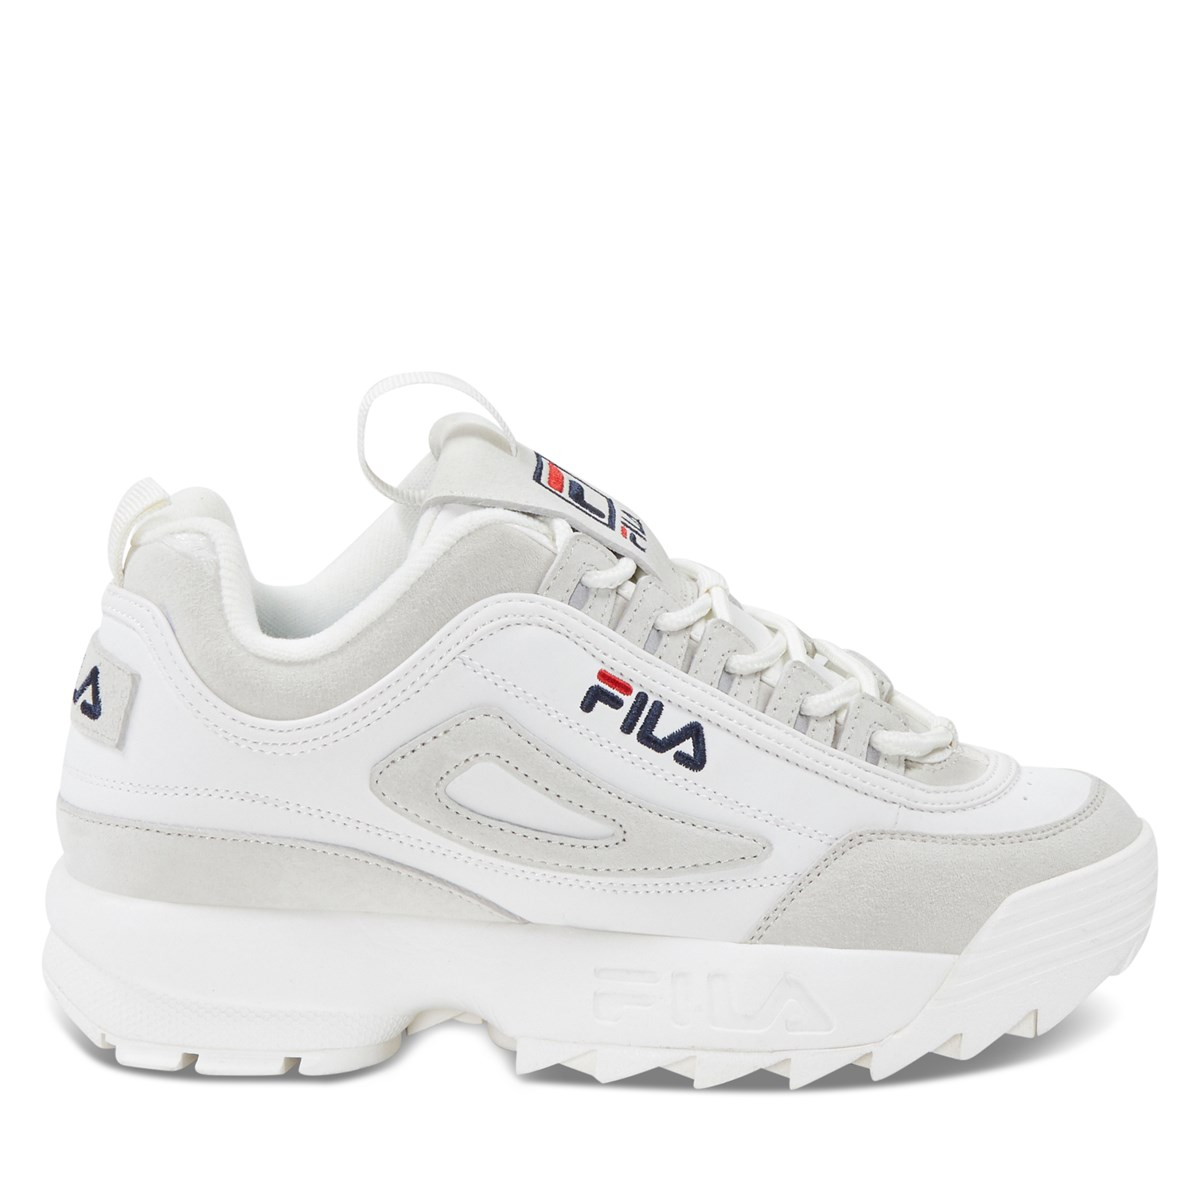 Women's Disruptor II Premium Gardenia Sneakers in White